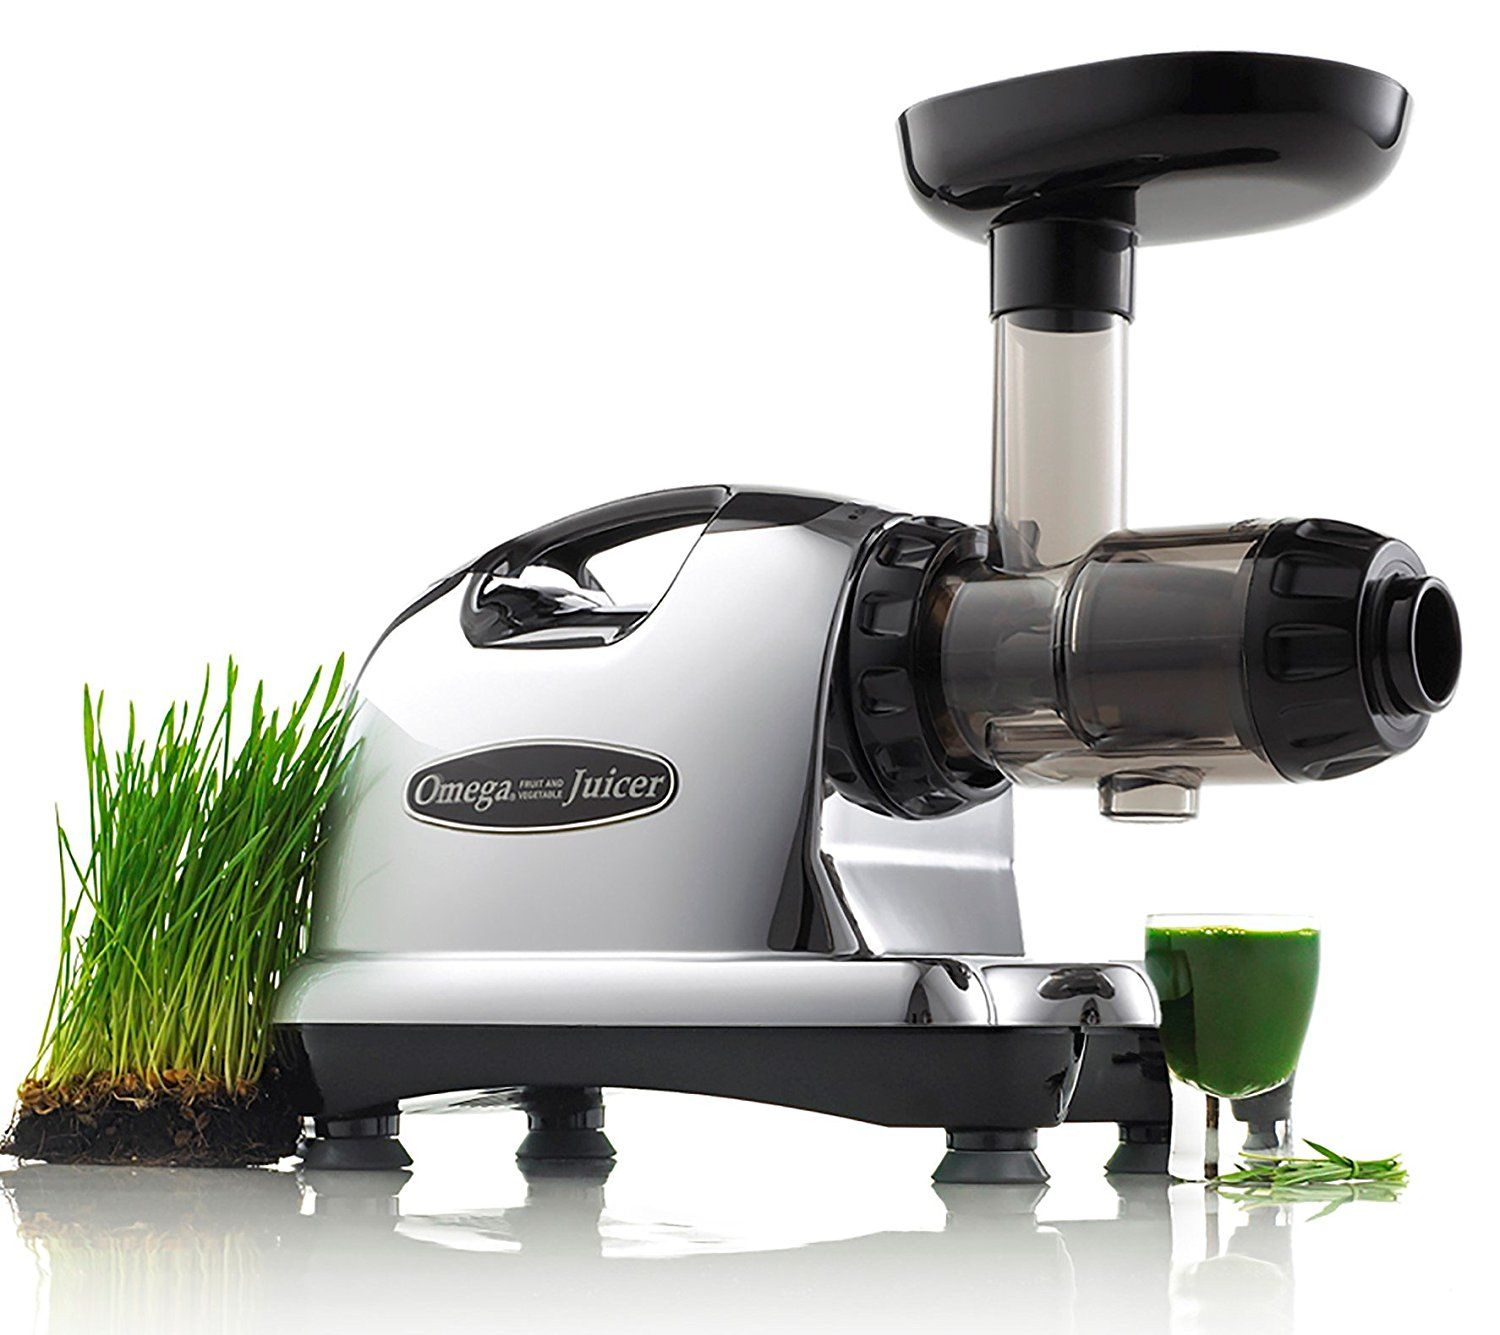 4 Best Masticating Juicer For Leafy Greens, Plus 1 To Avoid